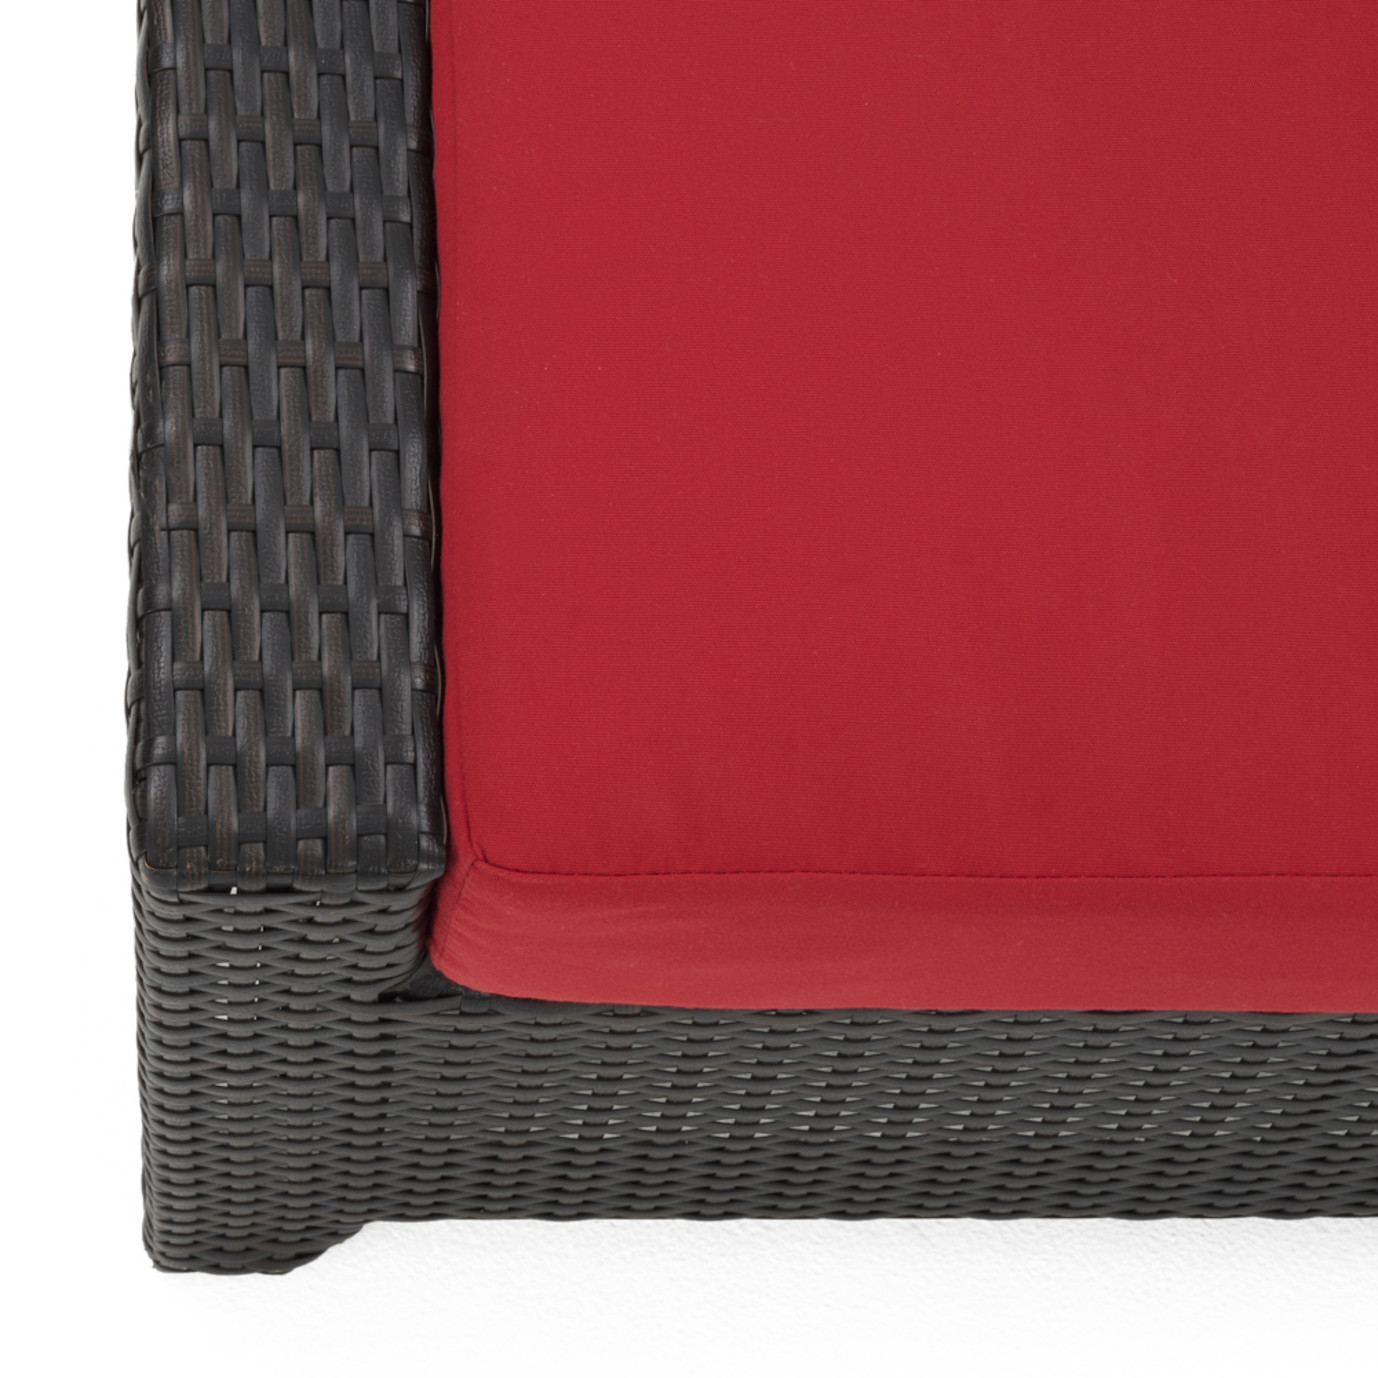 Deco™ Deluxe 5 Piece Motion Club & Ottoman Set - Sunset Red